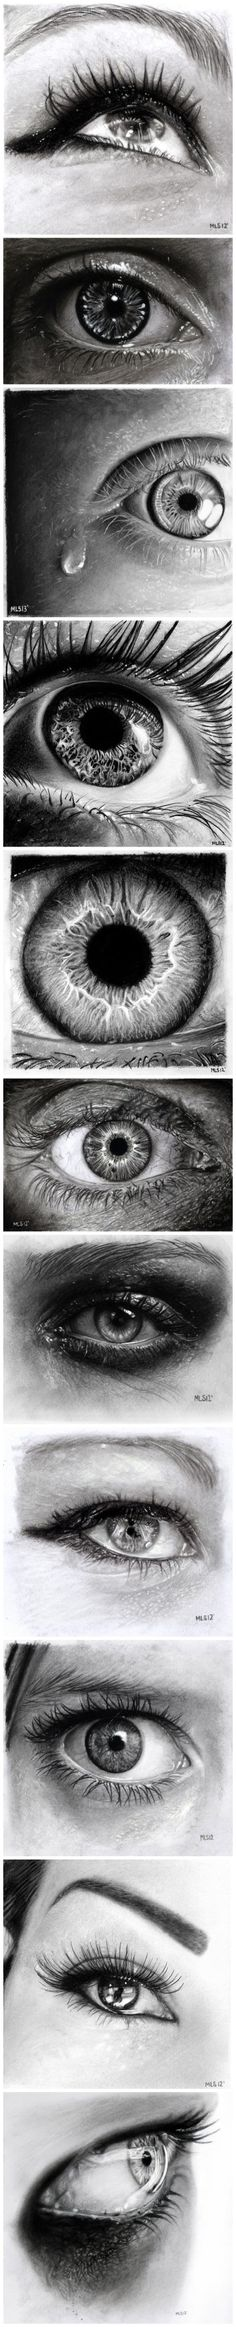 eyes---Pencil drawing